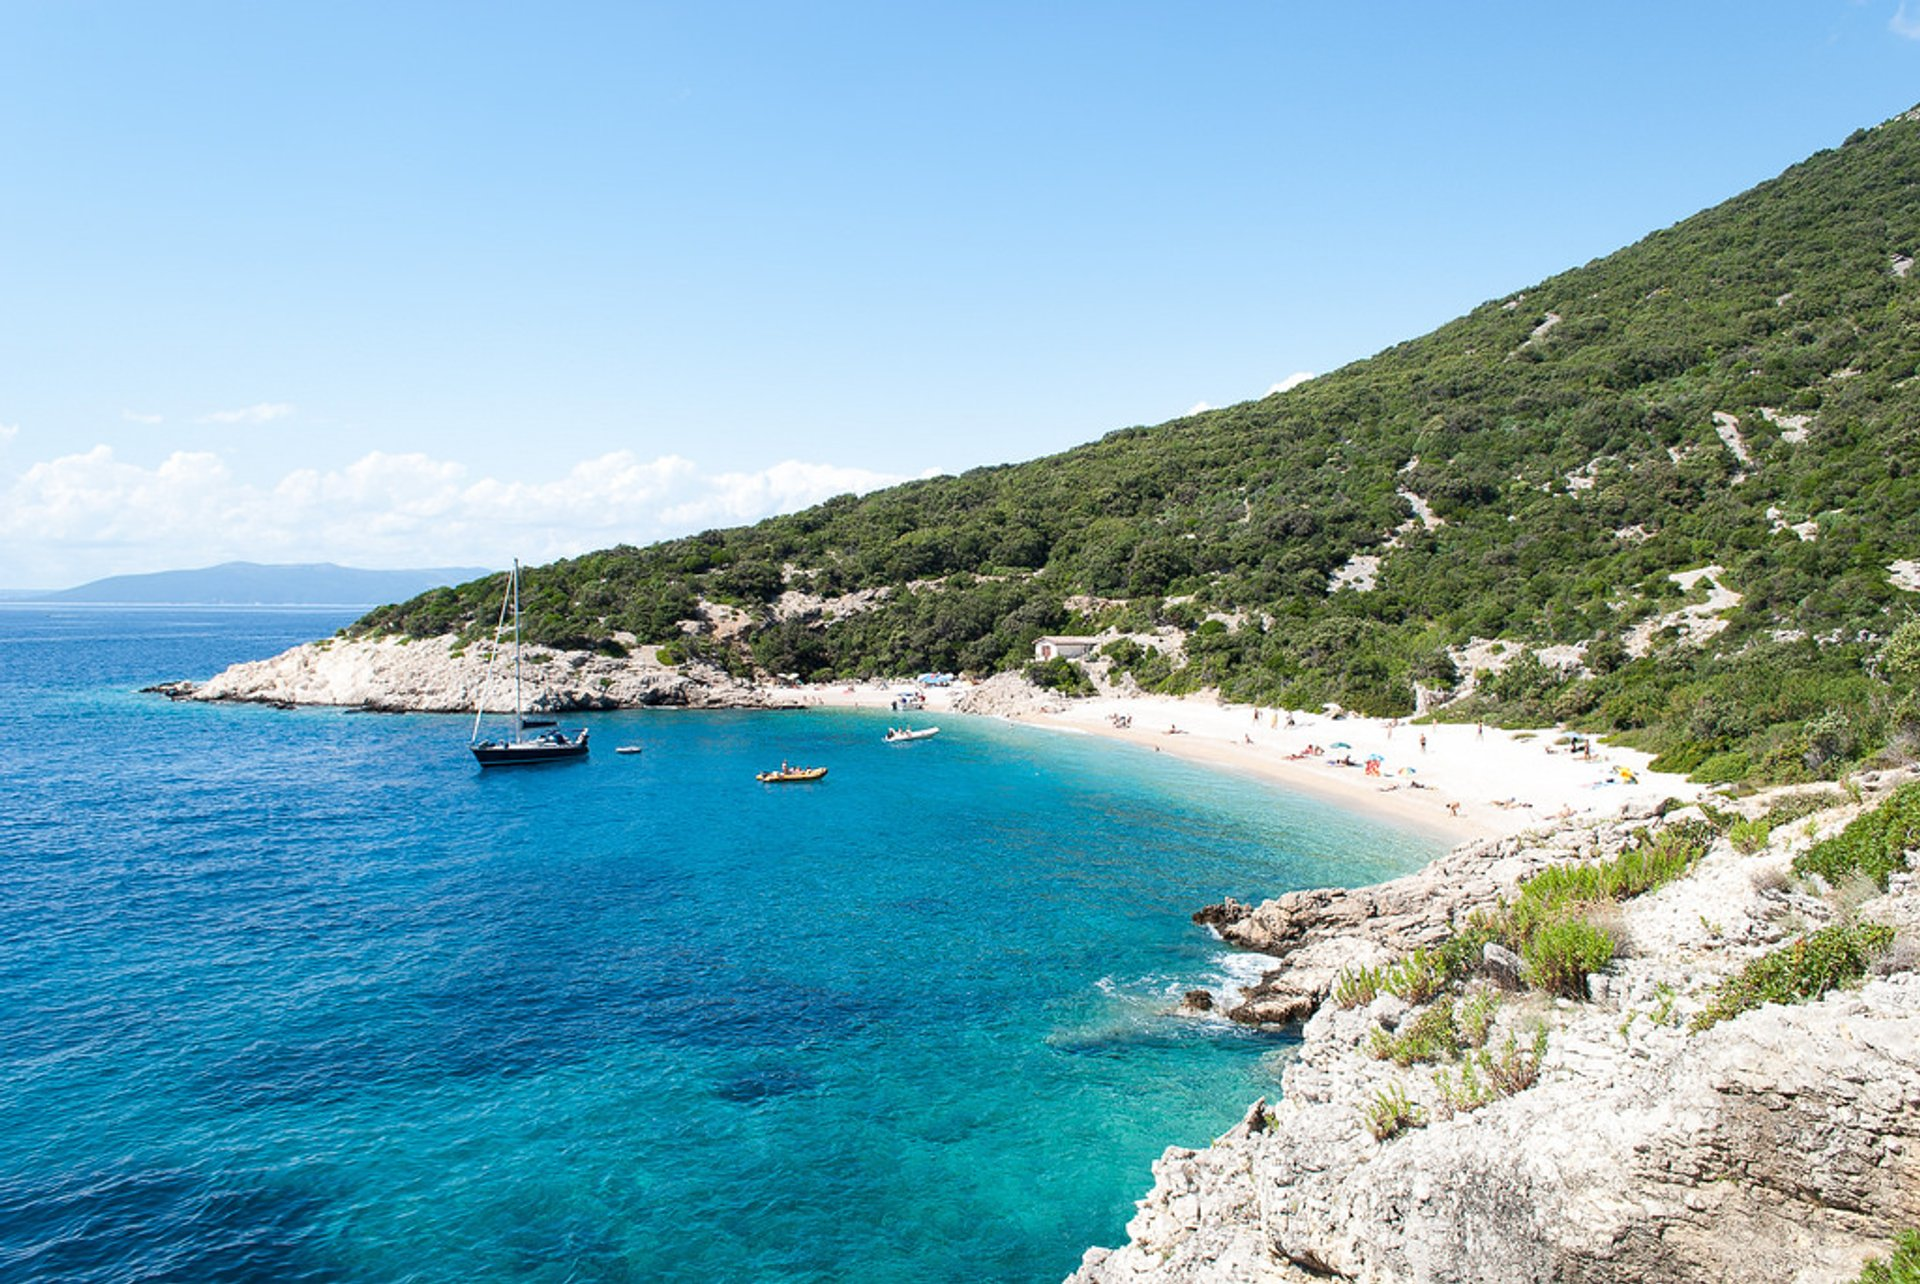 Beach Season in Croatia 2020 - Best Time